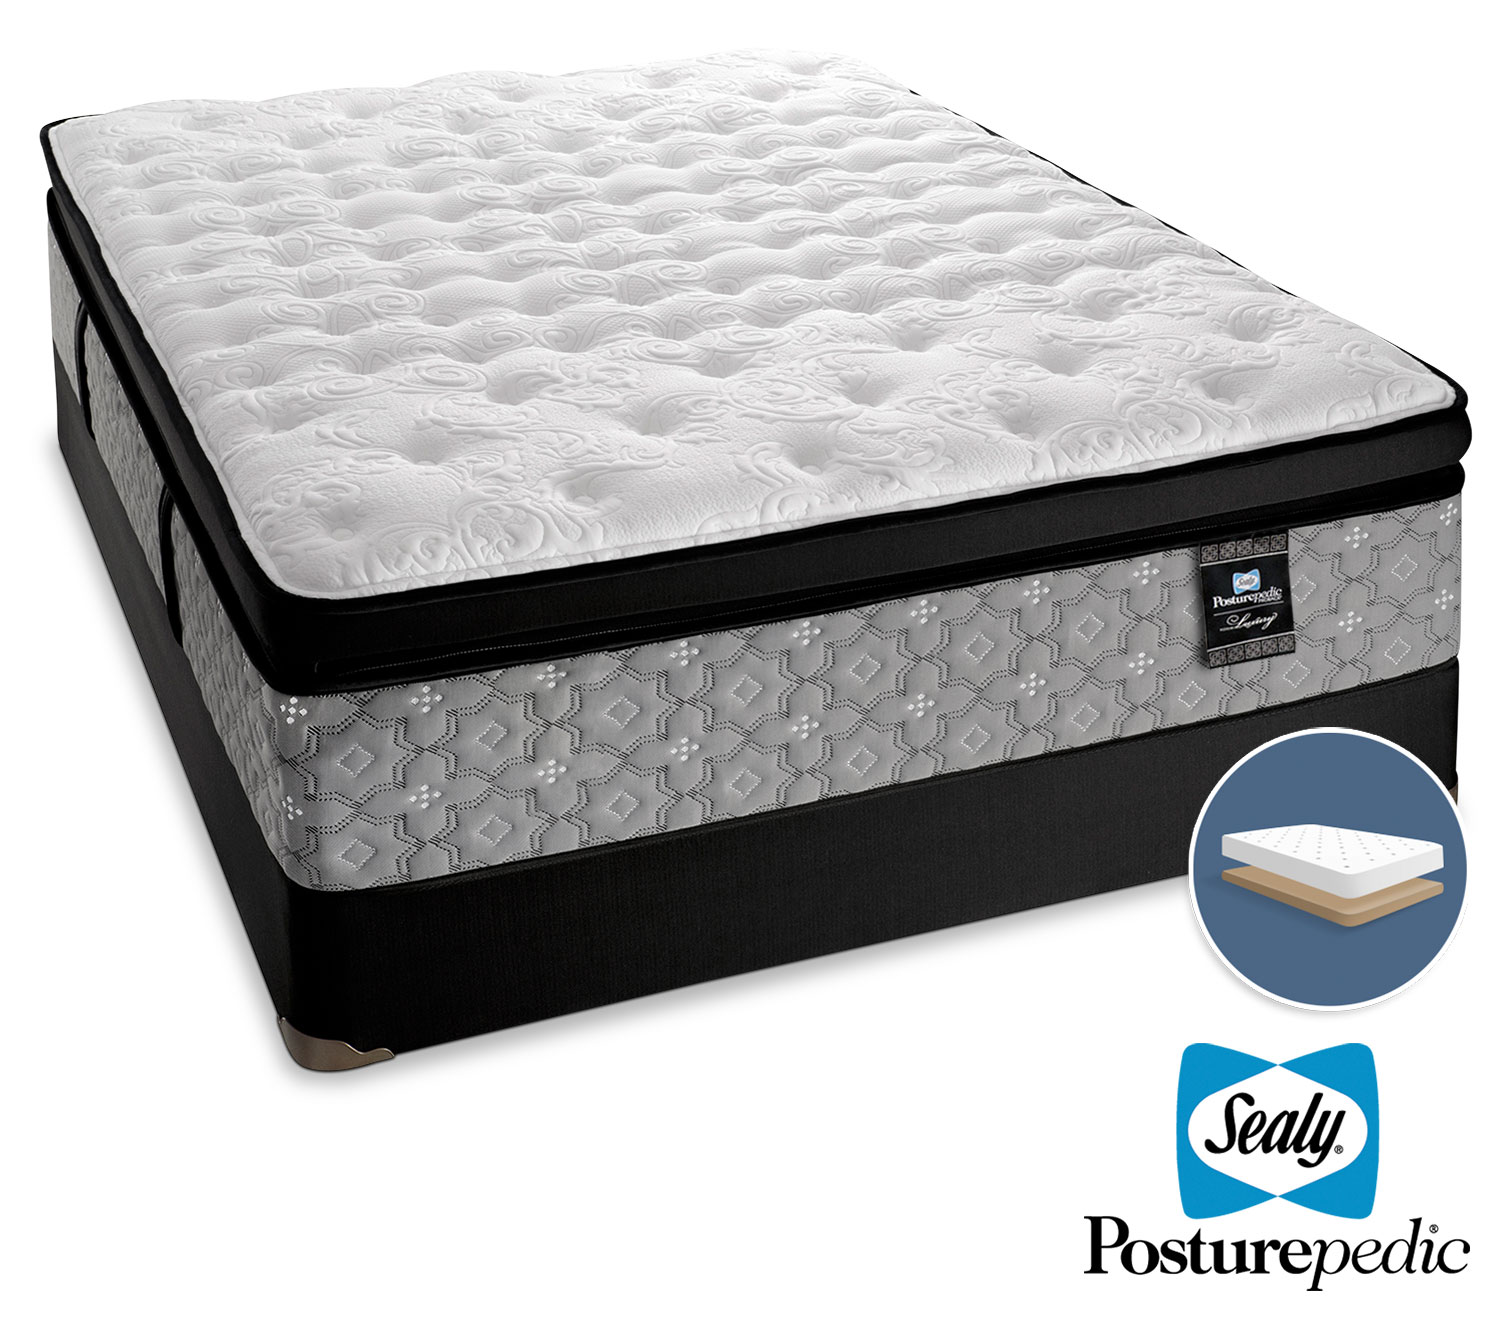 Mattresses and Bedding - Sealy Spartacus Firm Full Mattress and Low-Profile Boxspring Set